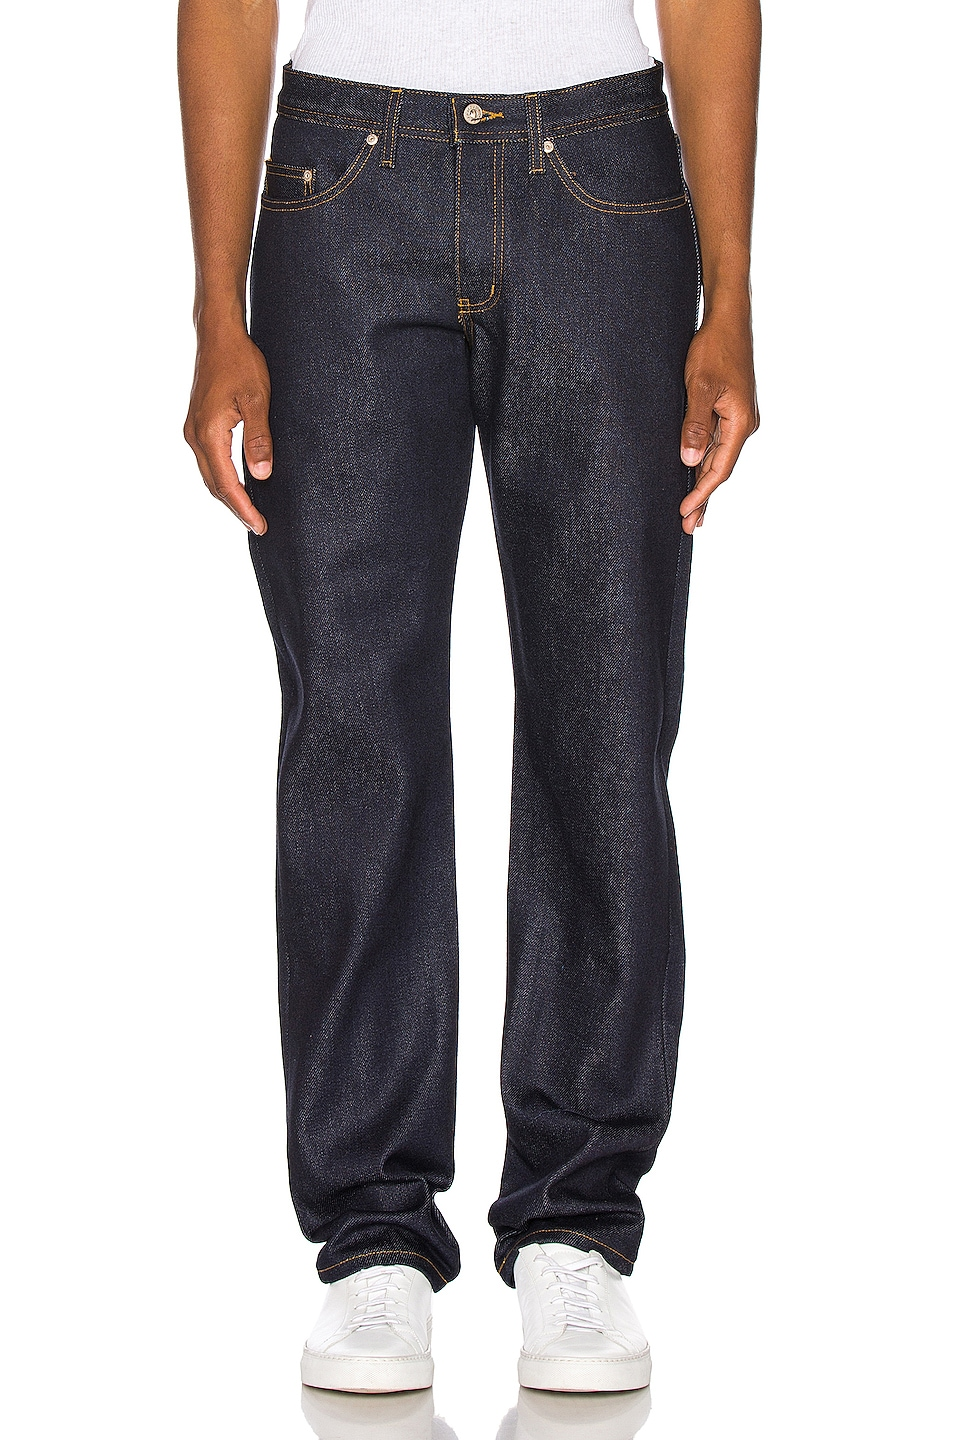 Image 1 of Naked & Famous Denim Weird Guy Jeans in Elephant 8 Supima Soft Selvedge